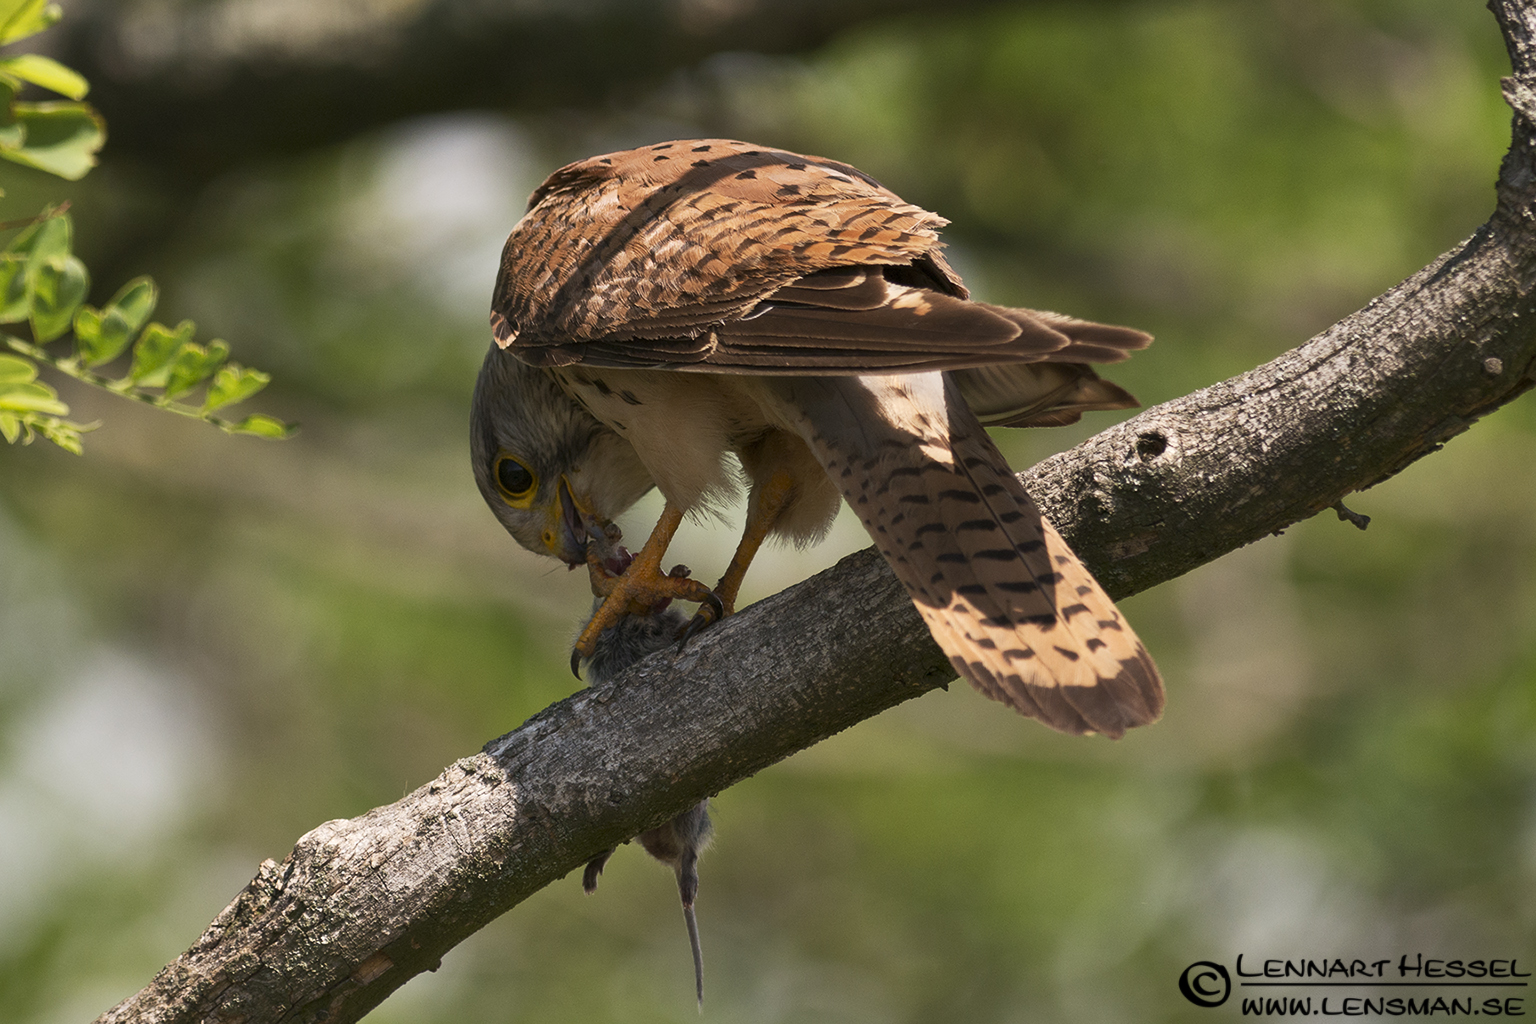 Common Kestrel in Hungary